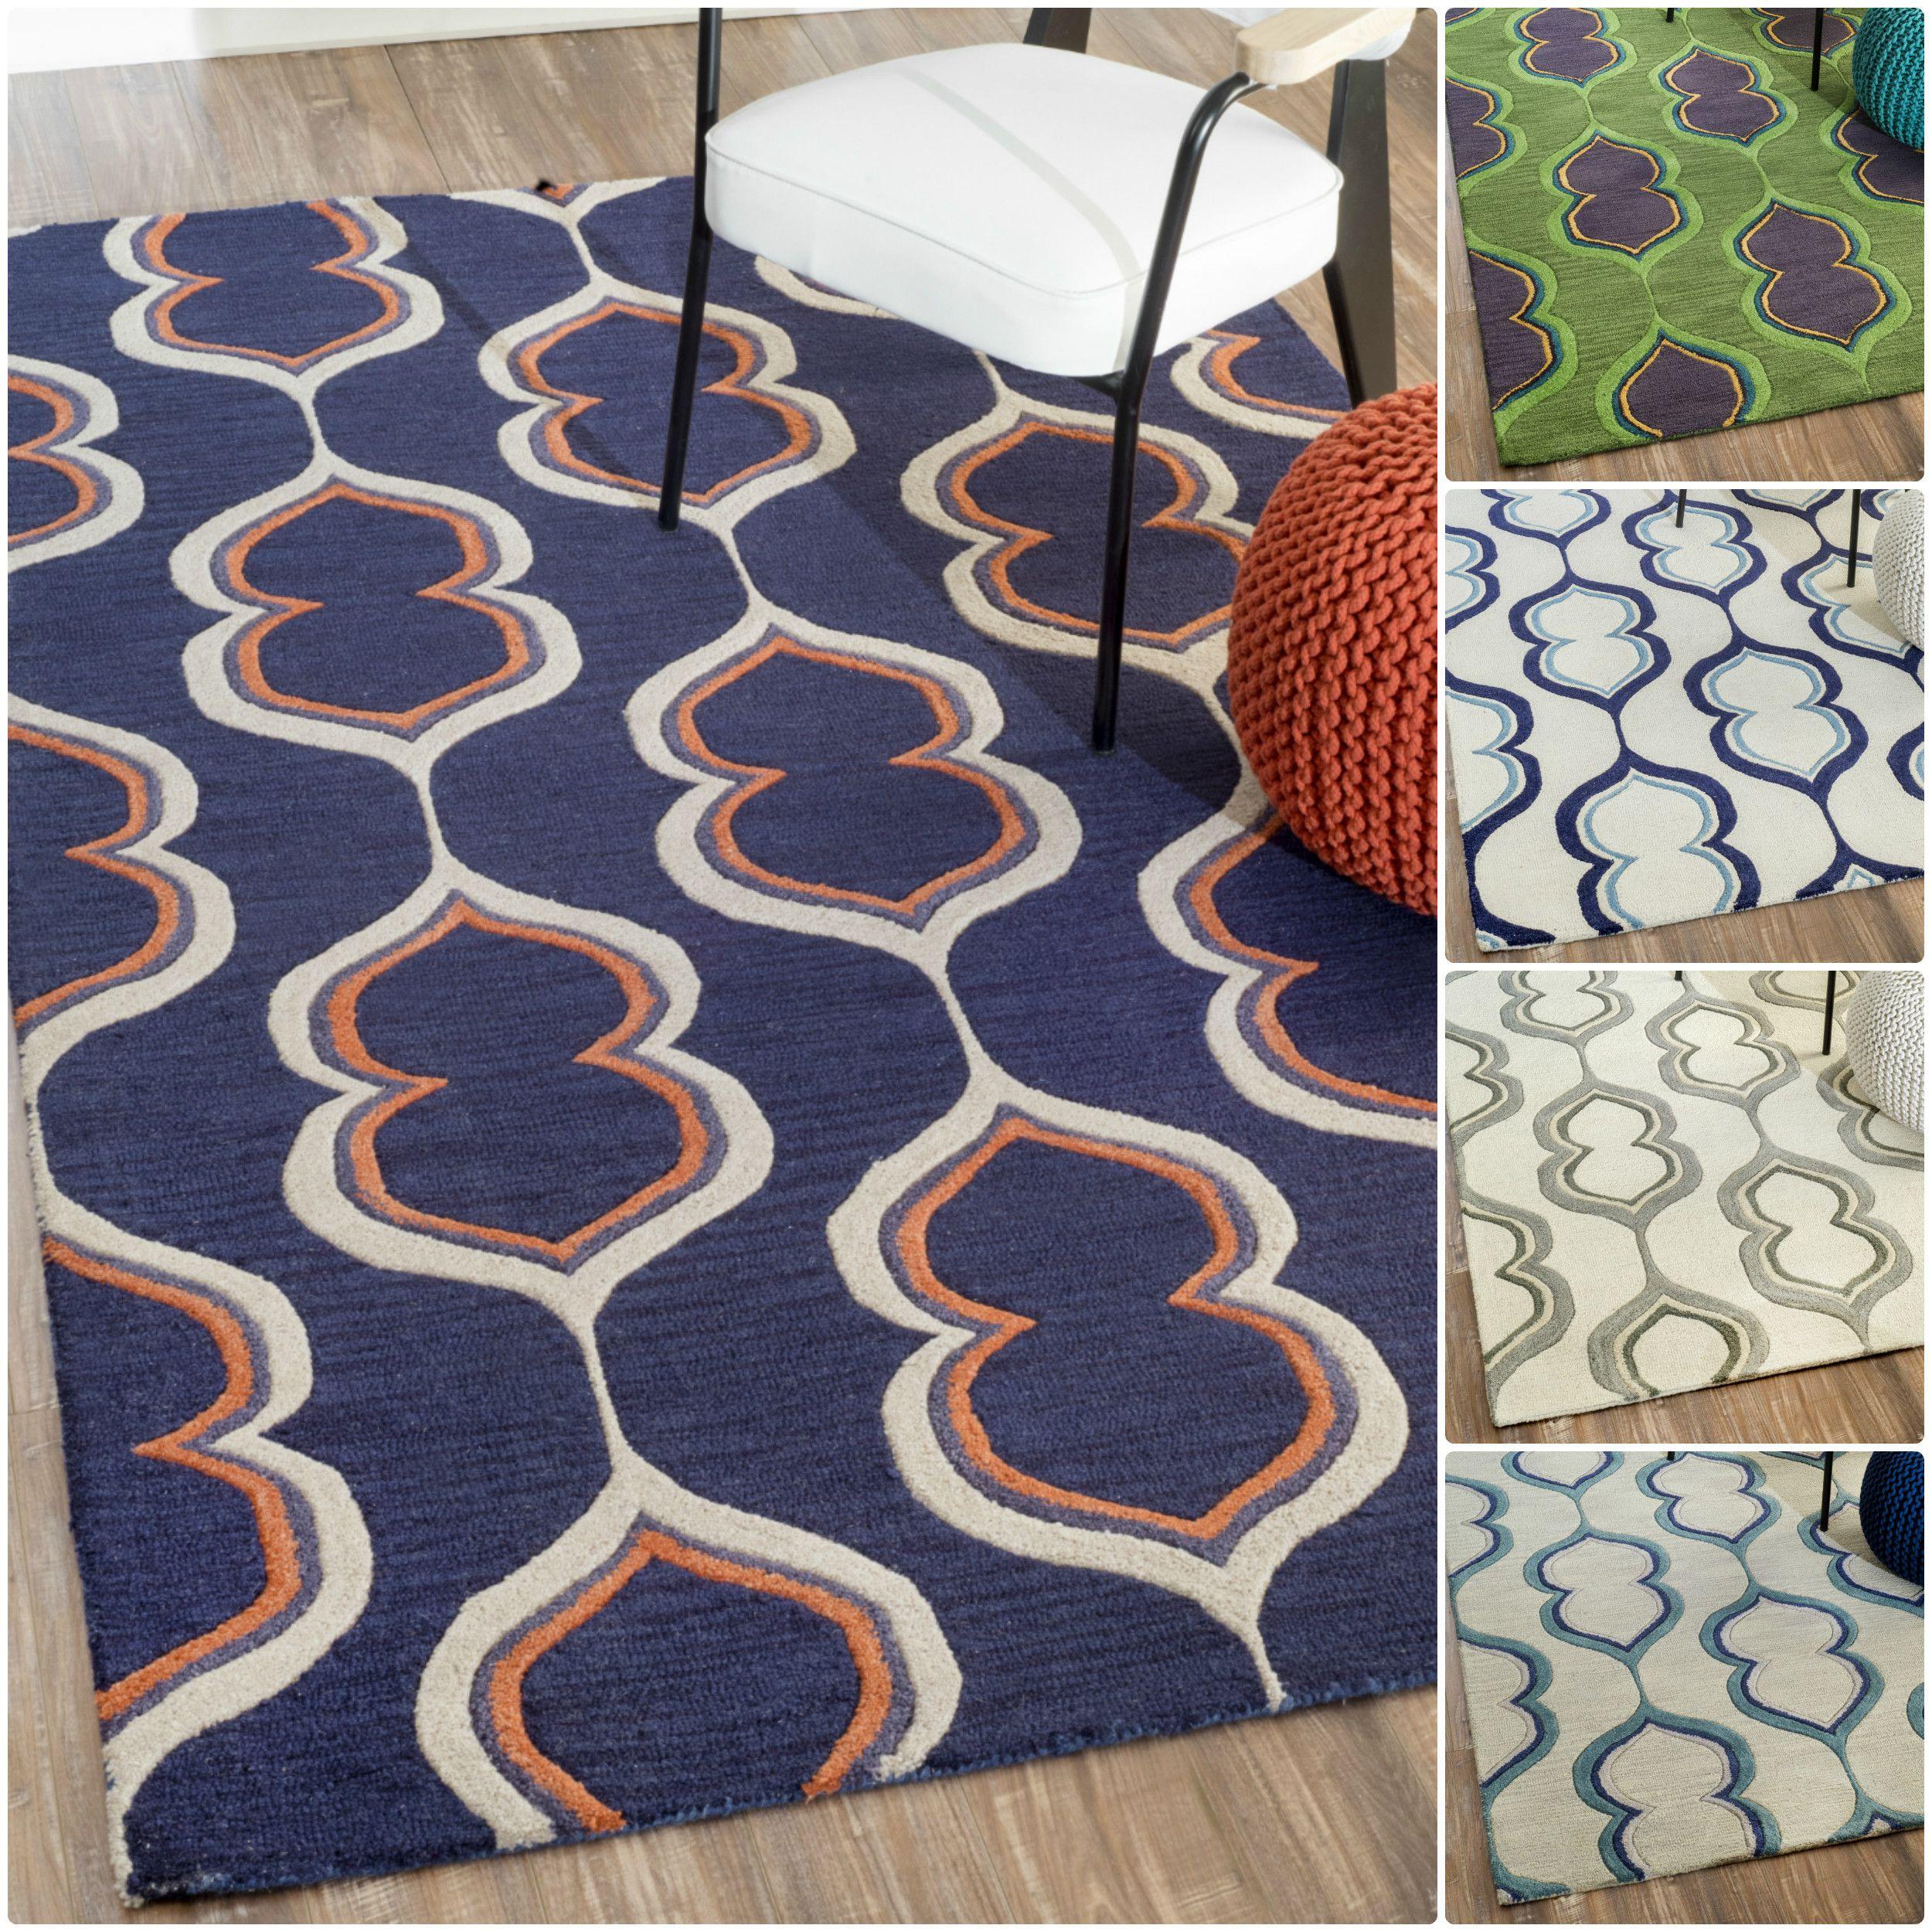 Bring Style And Elegance Into Your Room Setting With This Rug